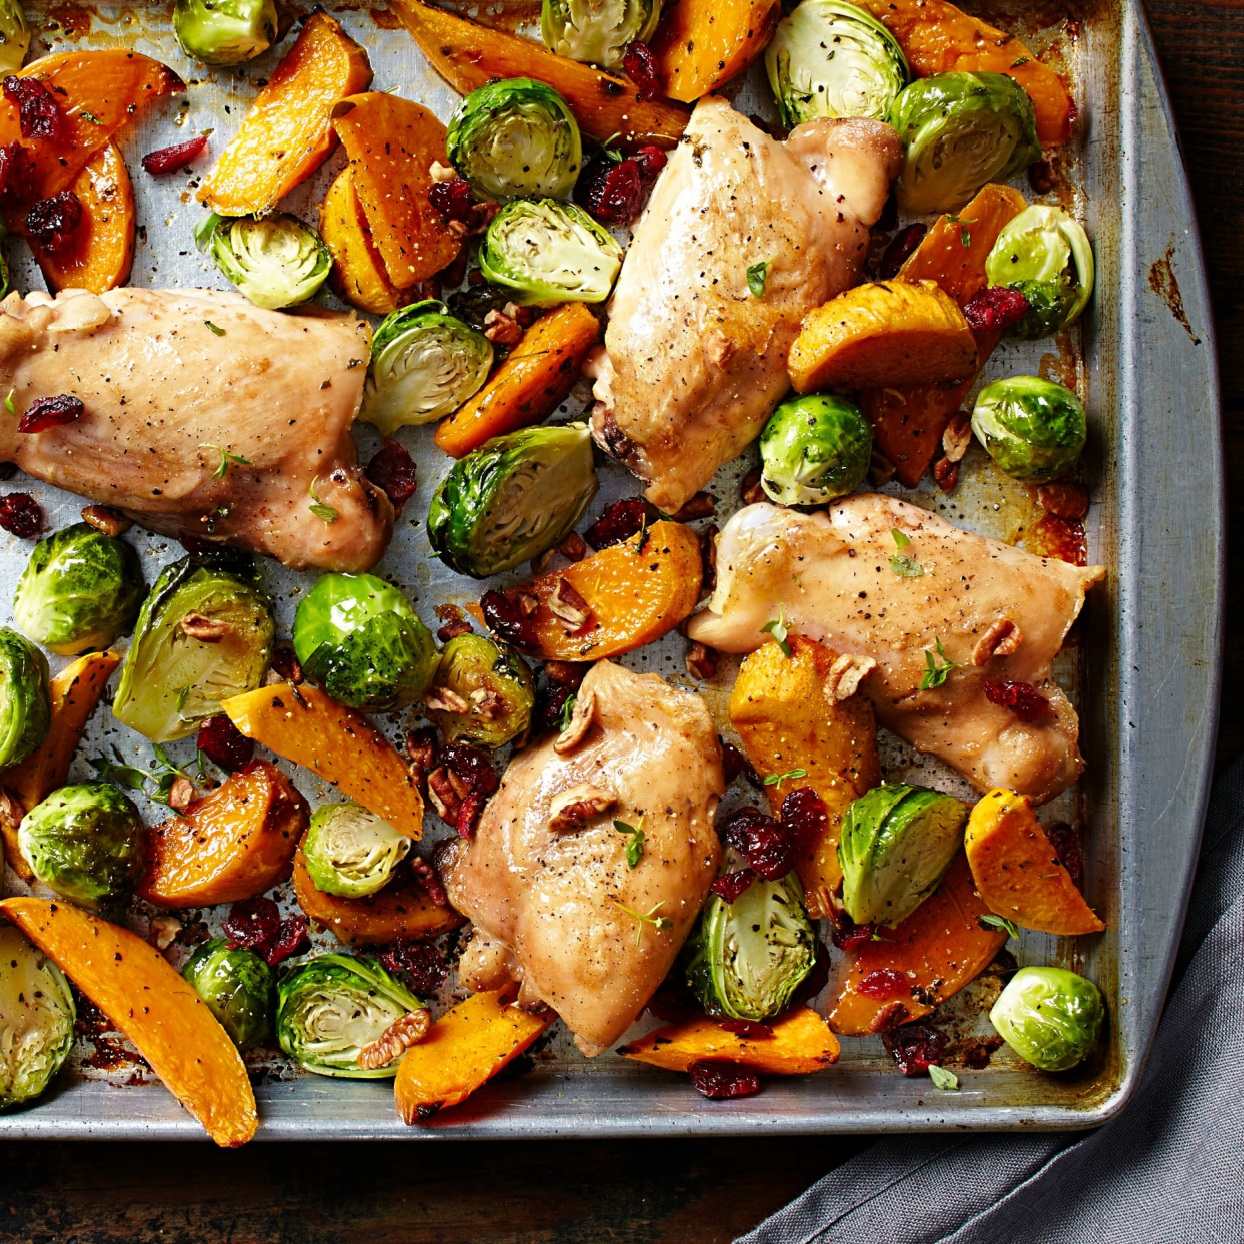 chicken thighs, brussels sprouts, and sweet potatoes roasted on a sheet pan